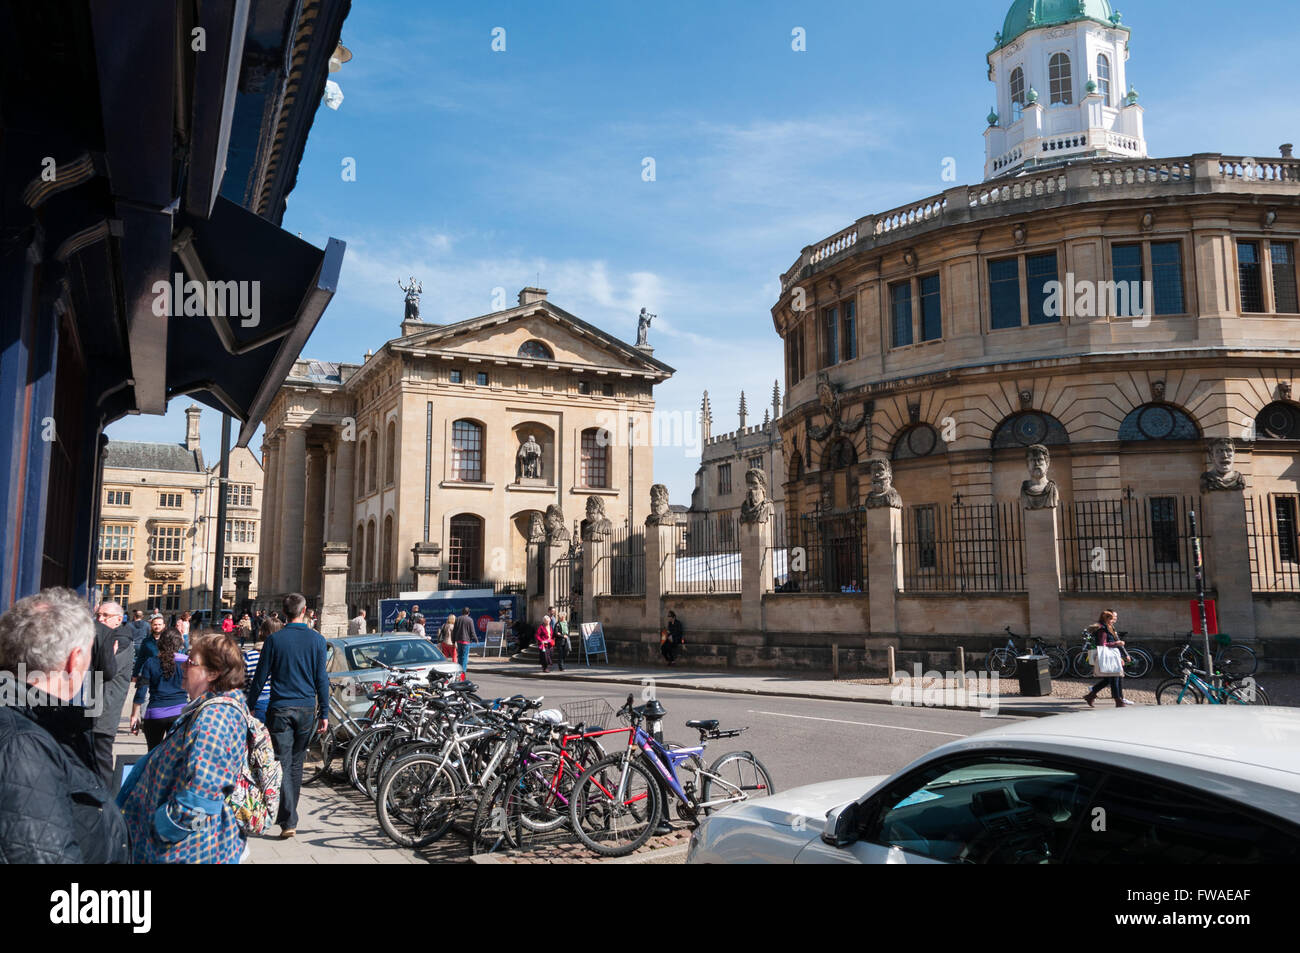 View of the Broad Street and the Bodleian Library (Clarendon Building), Oxford, United Kingdom - Stock Image